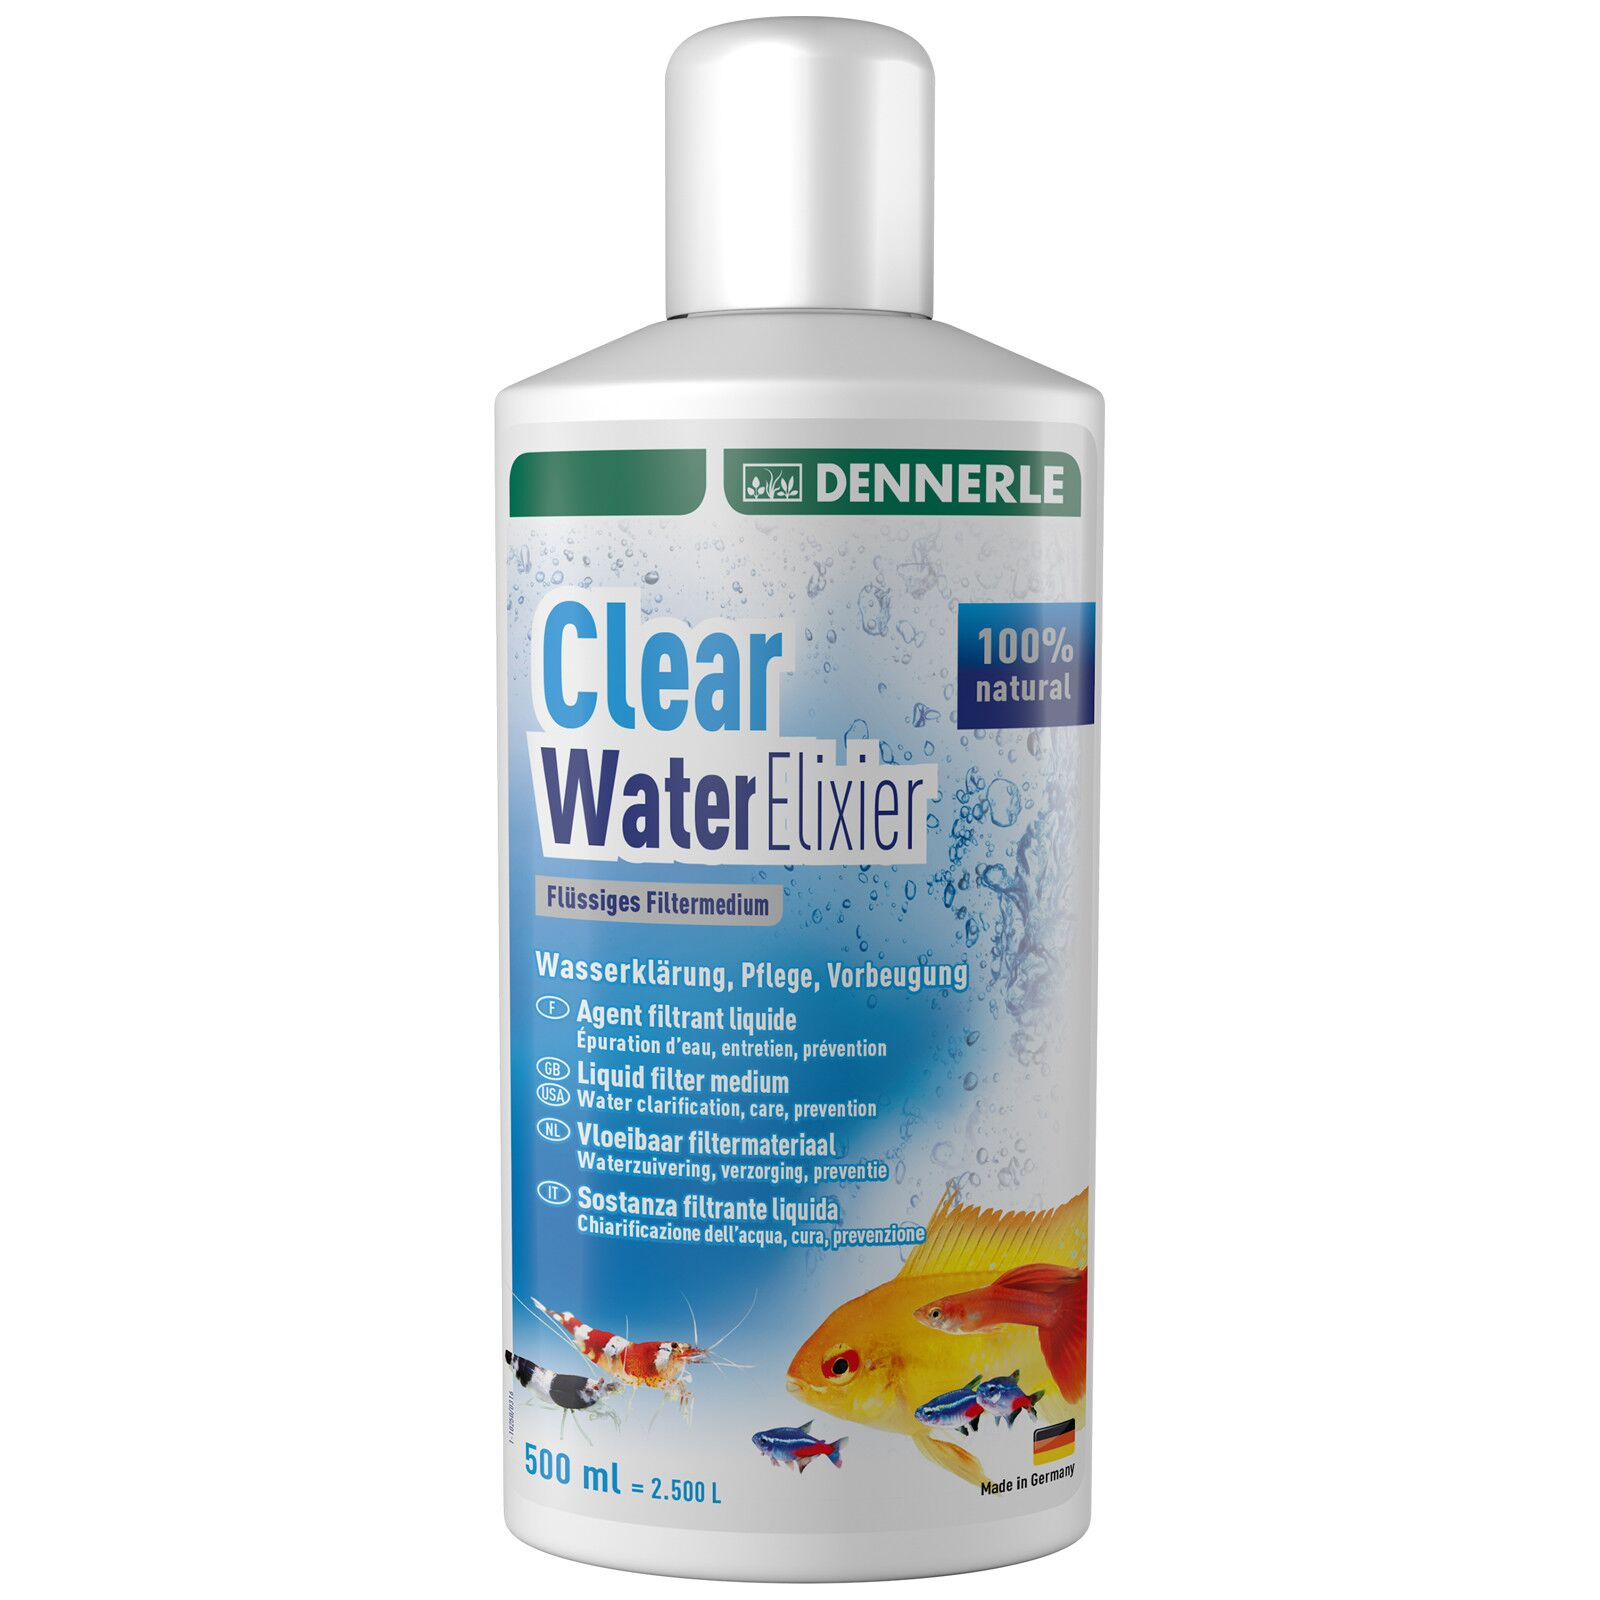 Dennerle - Clear Water Elixier